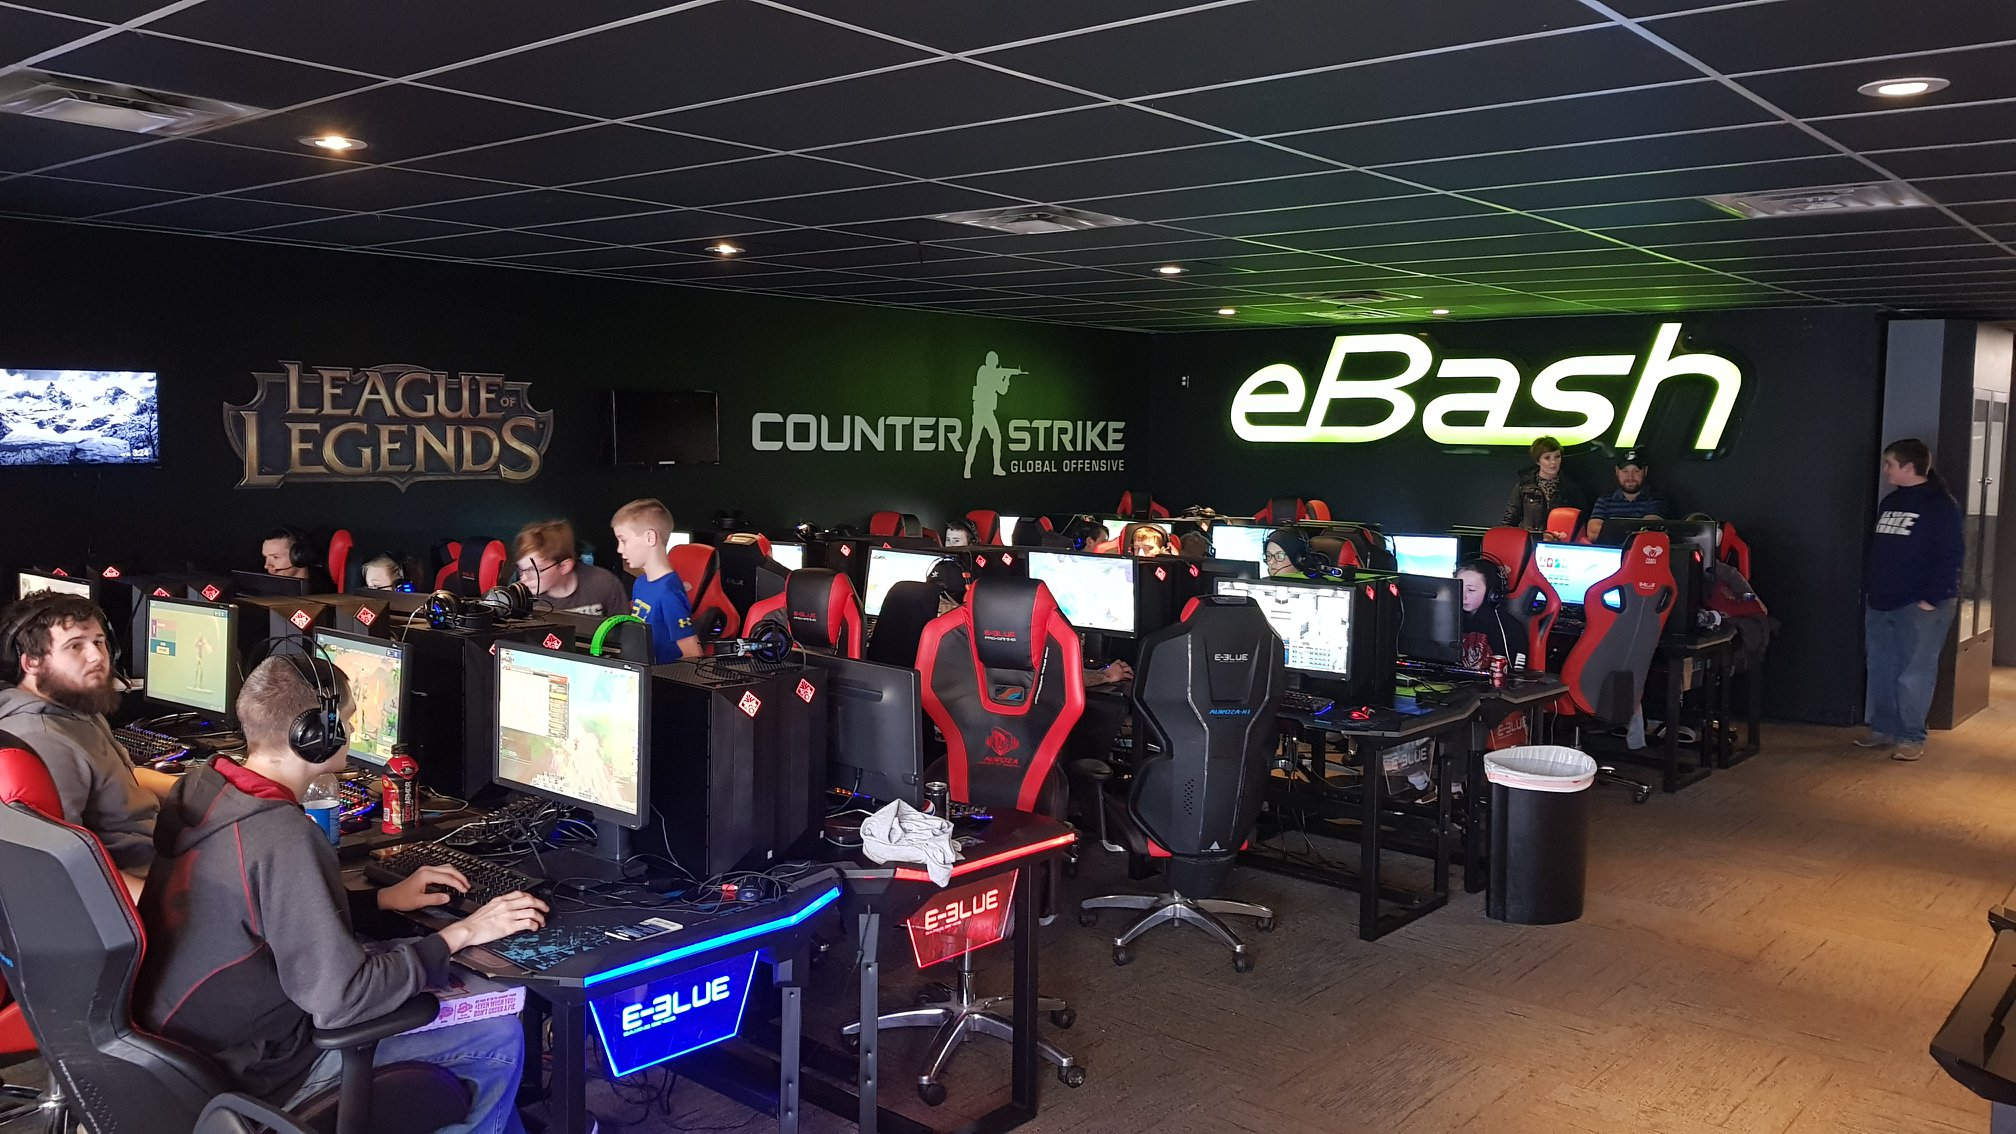 LAN centers provide video game experience that can never be attained when playing games at home